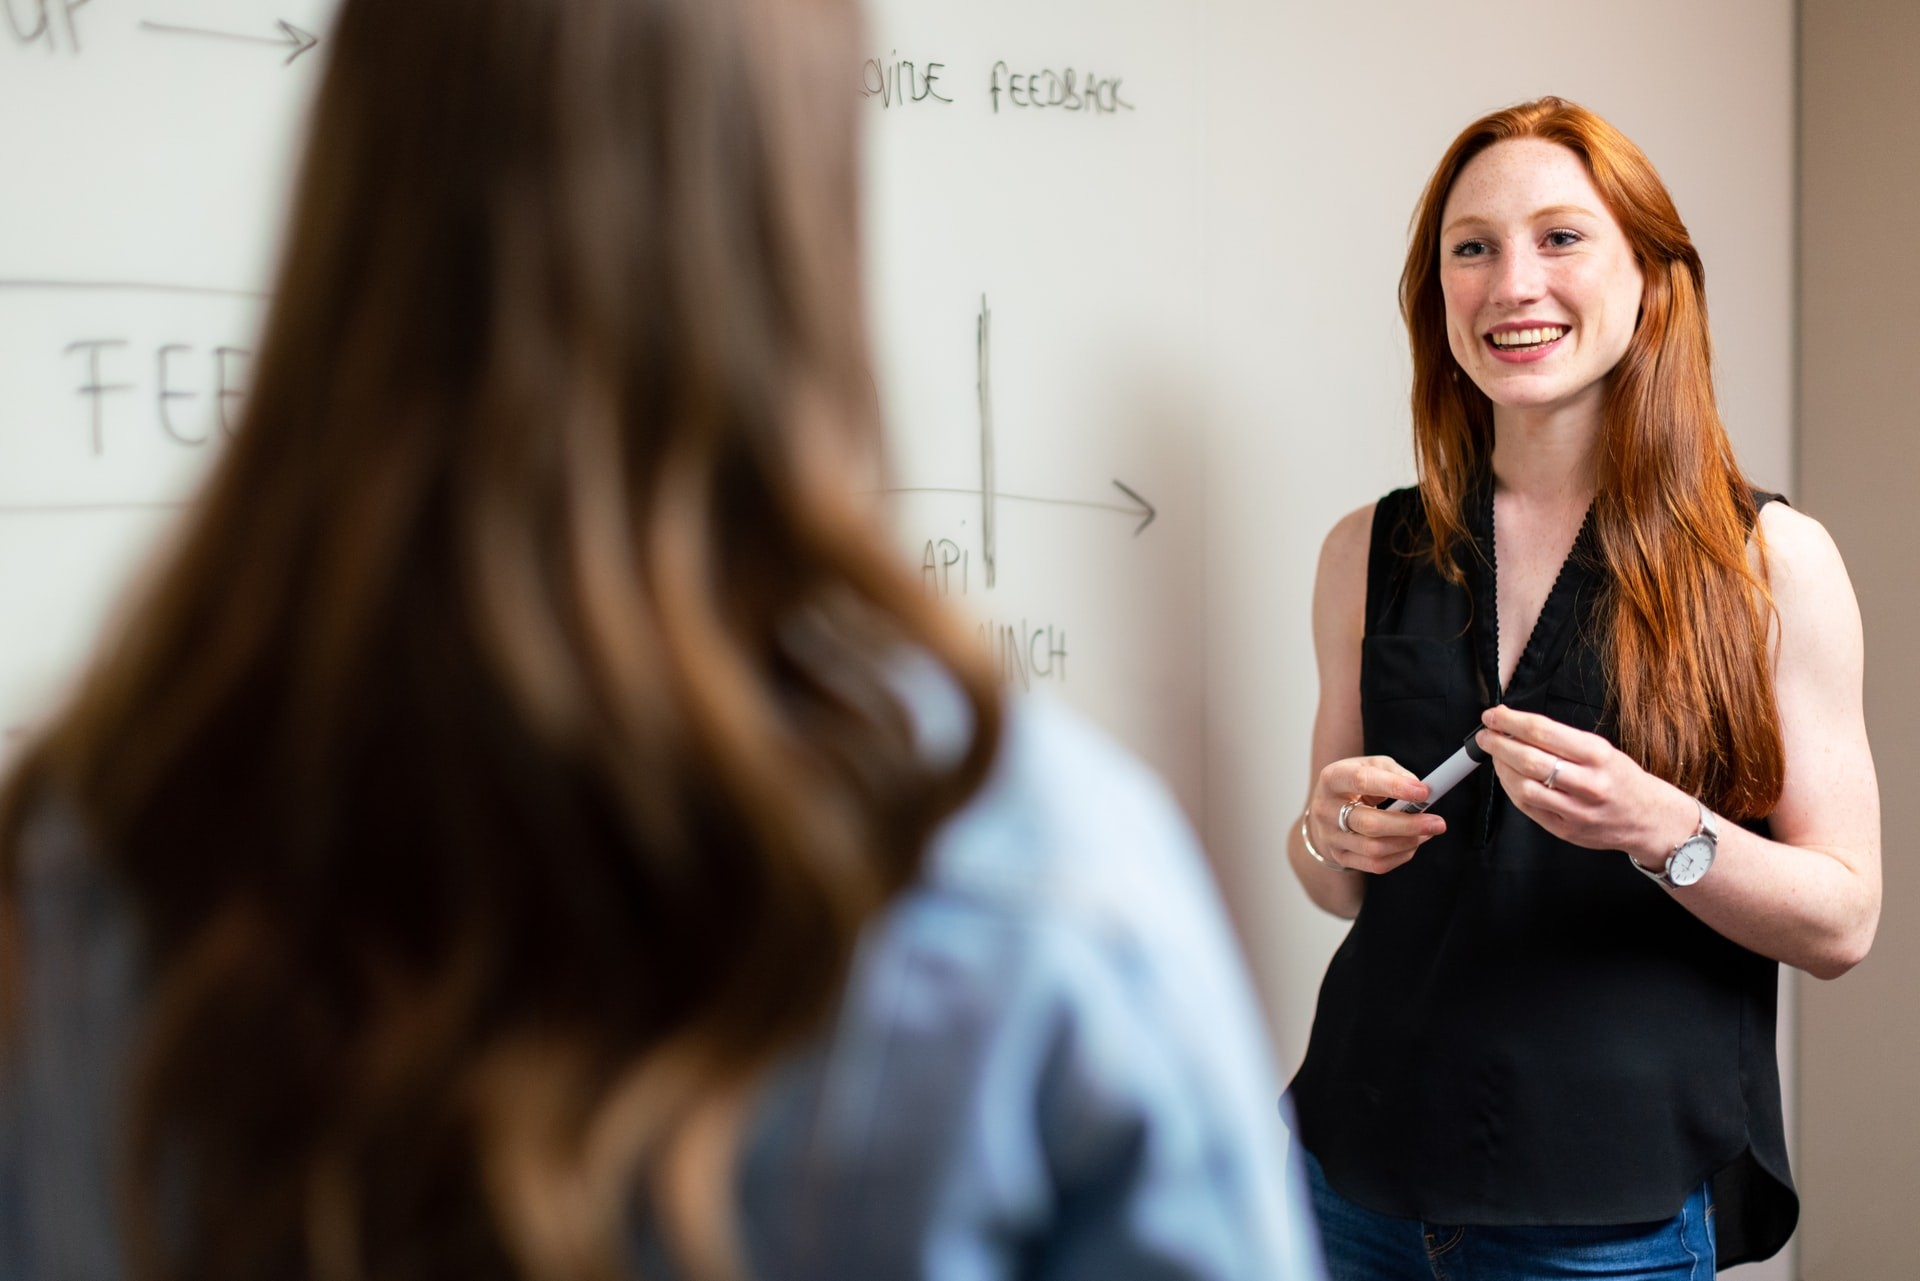 Female teacher with red hair stands in front of a blackboard talking to a student who has their back to the camera.